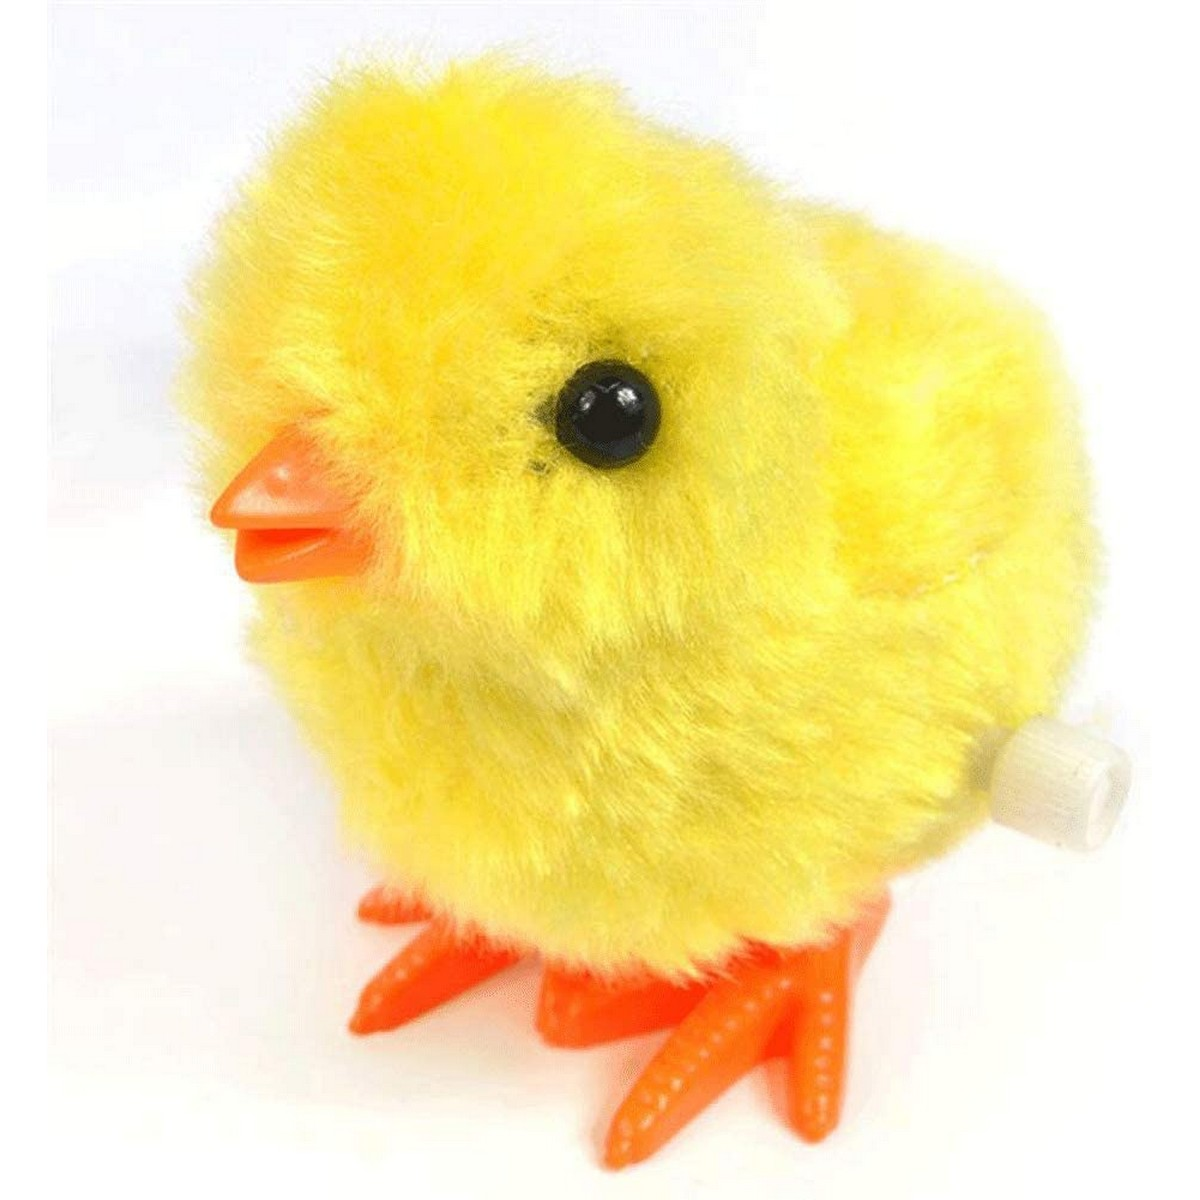 Funny Walking Chicken Chick Dancing Plastic Animal Toy For Kids Multicolors - Happytoys